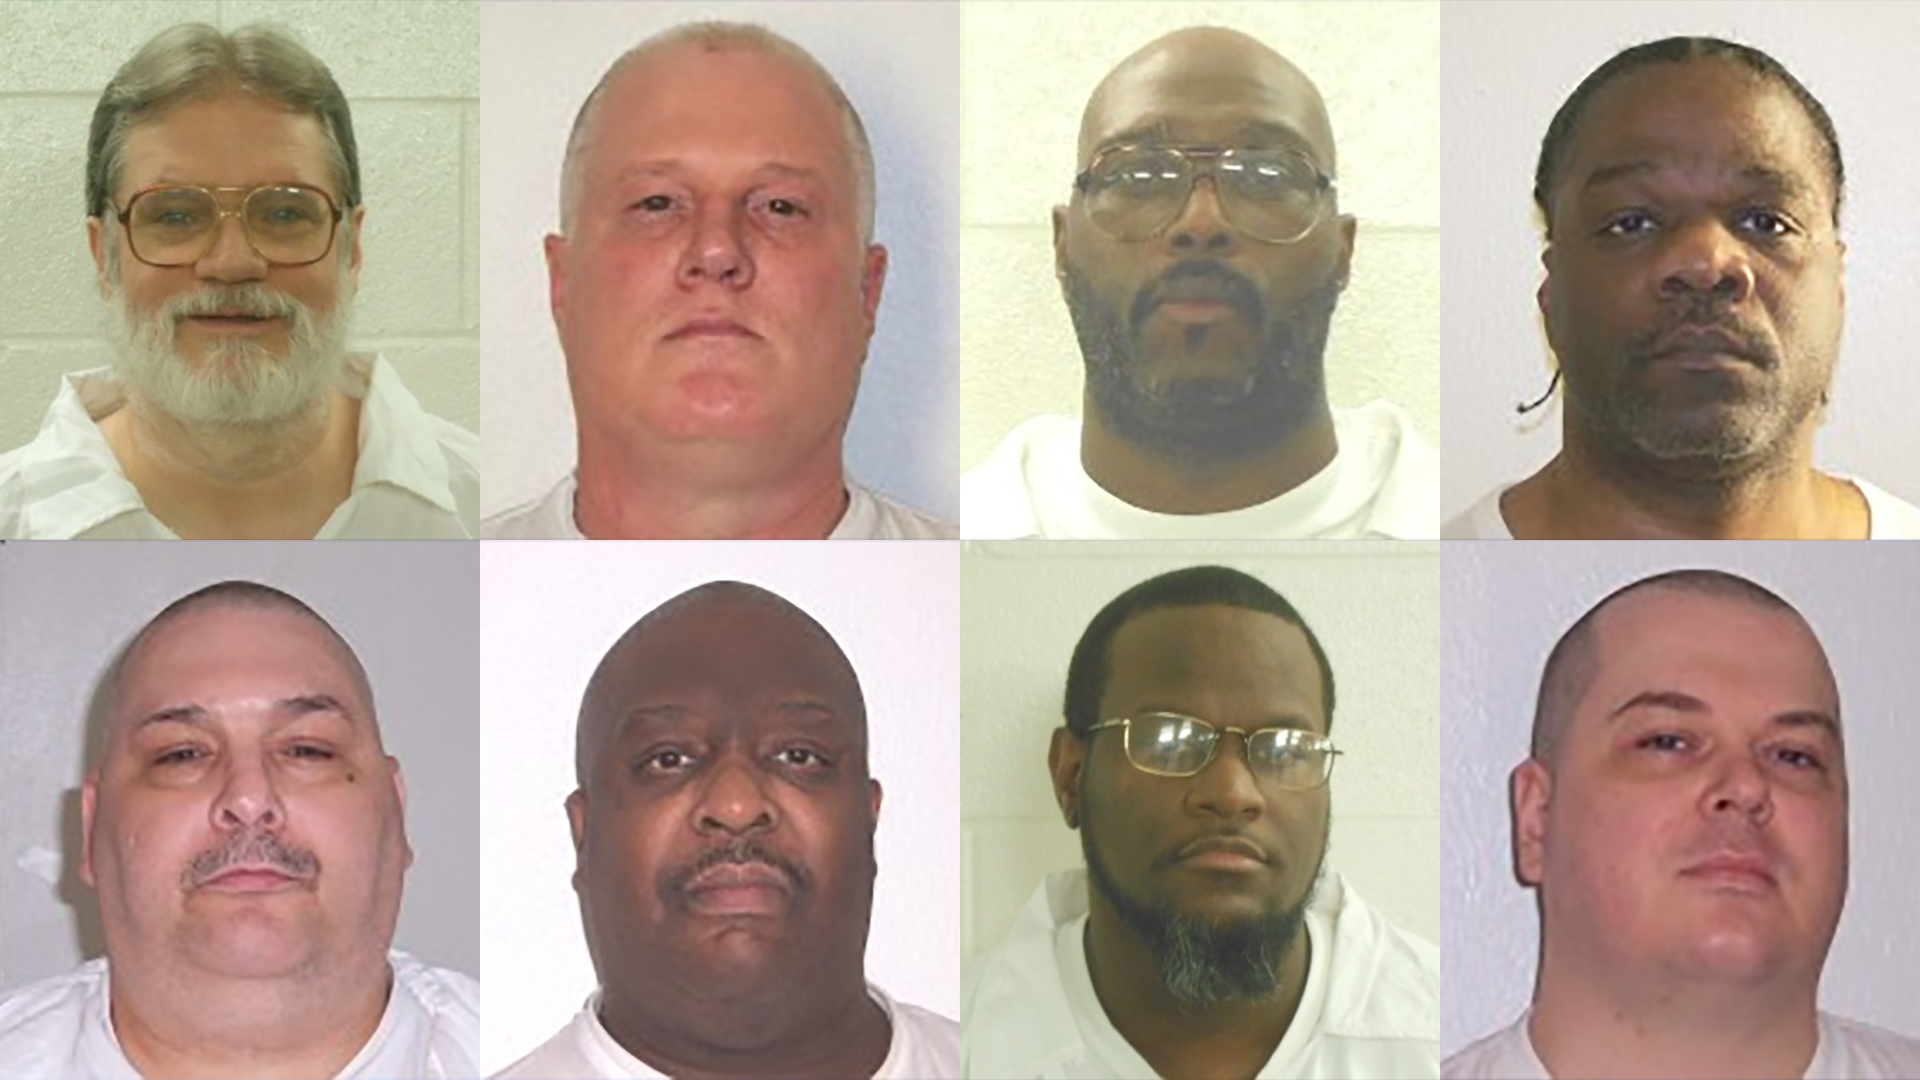 The 8 men scheduled to be executed in April